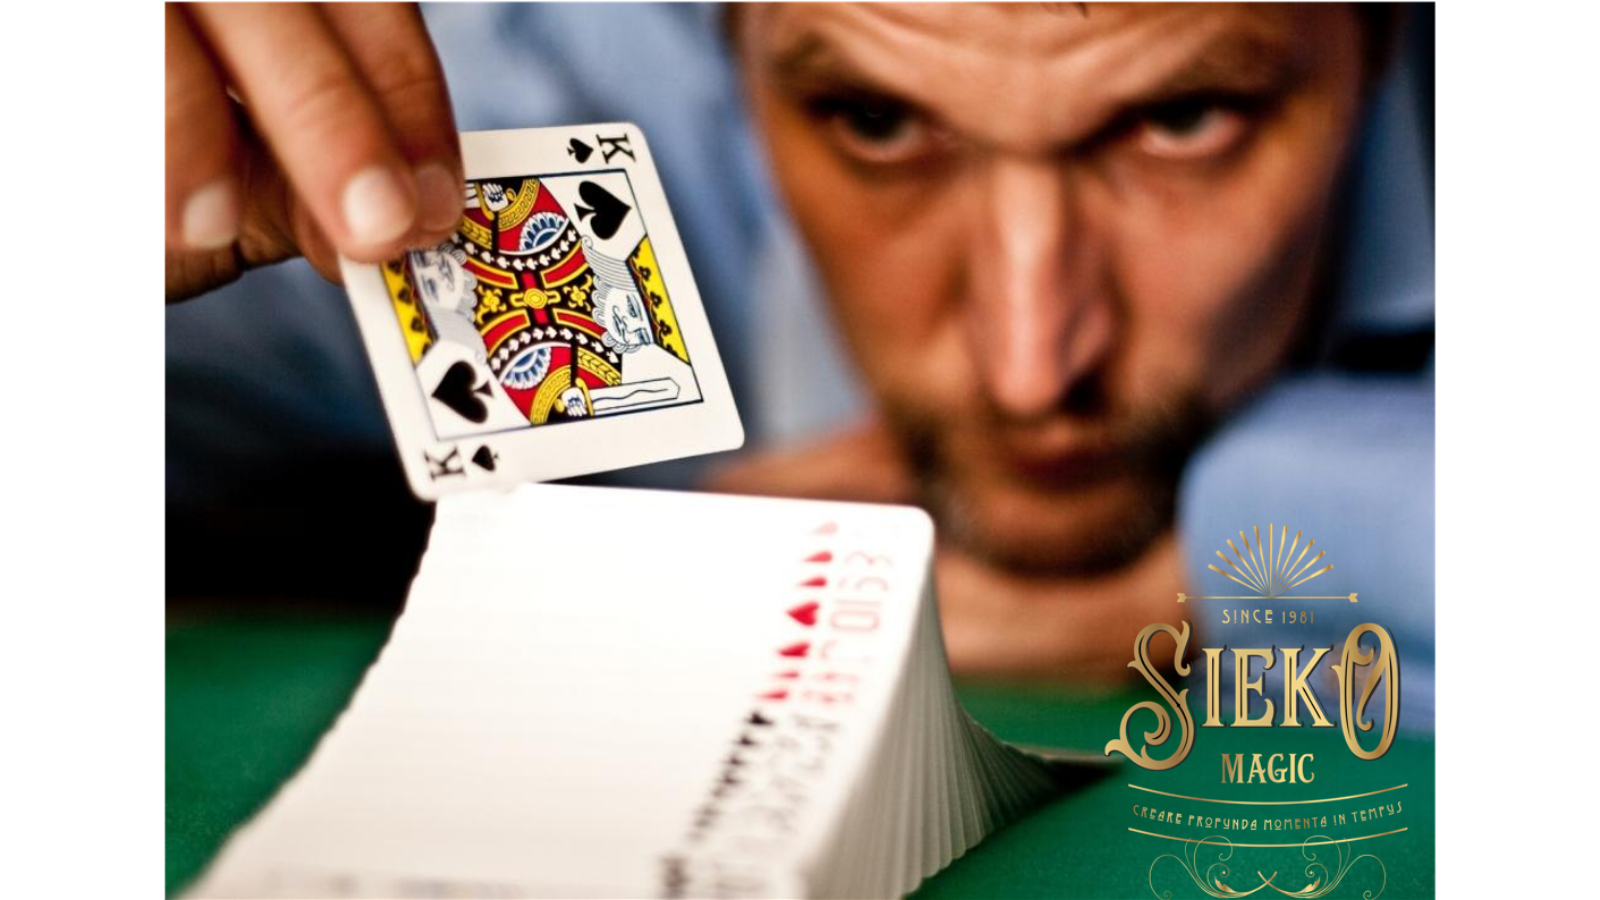 Magician Sieko is resting his head on his hand whilst looking at a pack of cards.